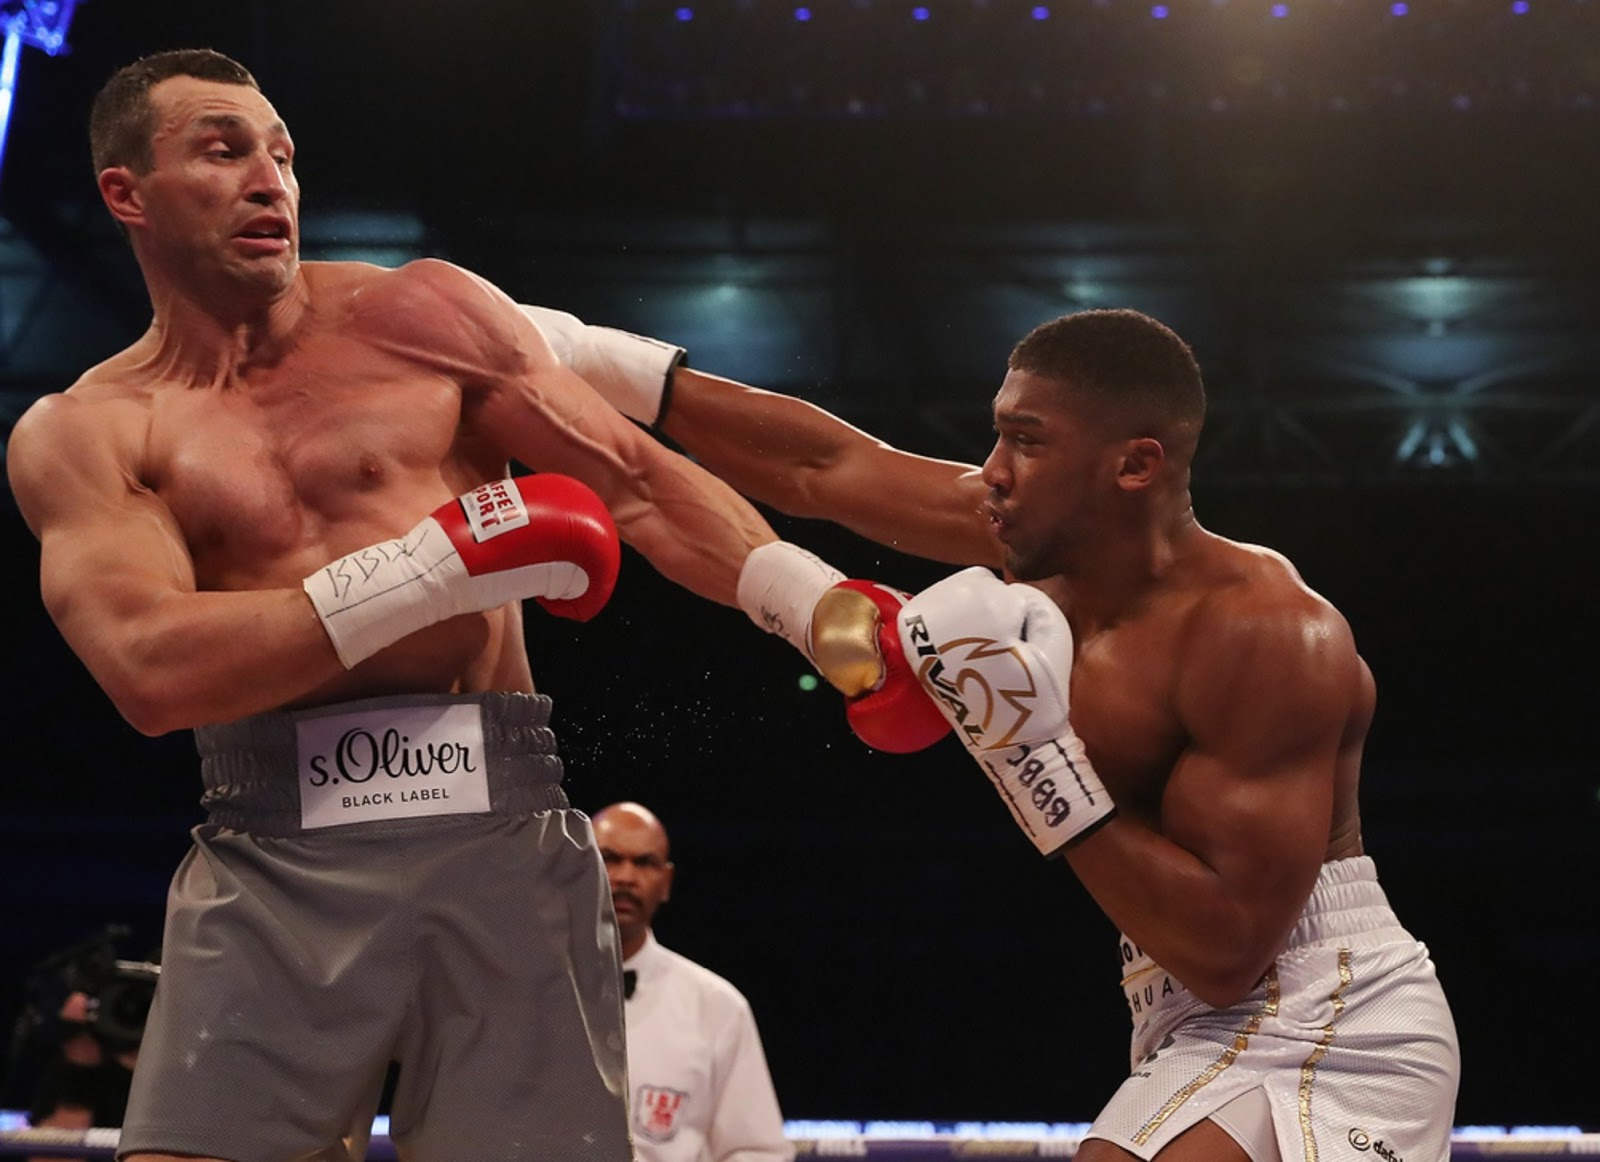 ANTHONY JOSHUA VS. WLADIMIR KLITSCHKO 6